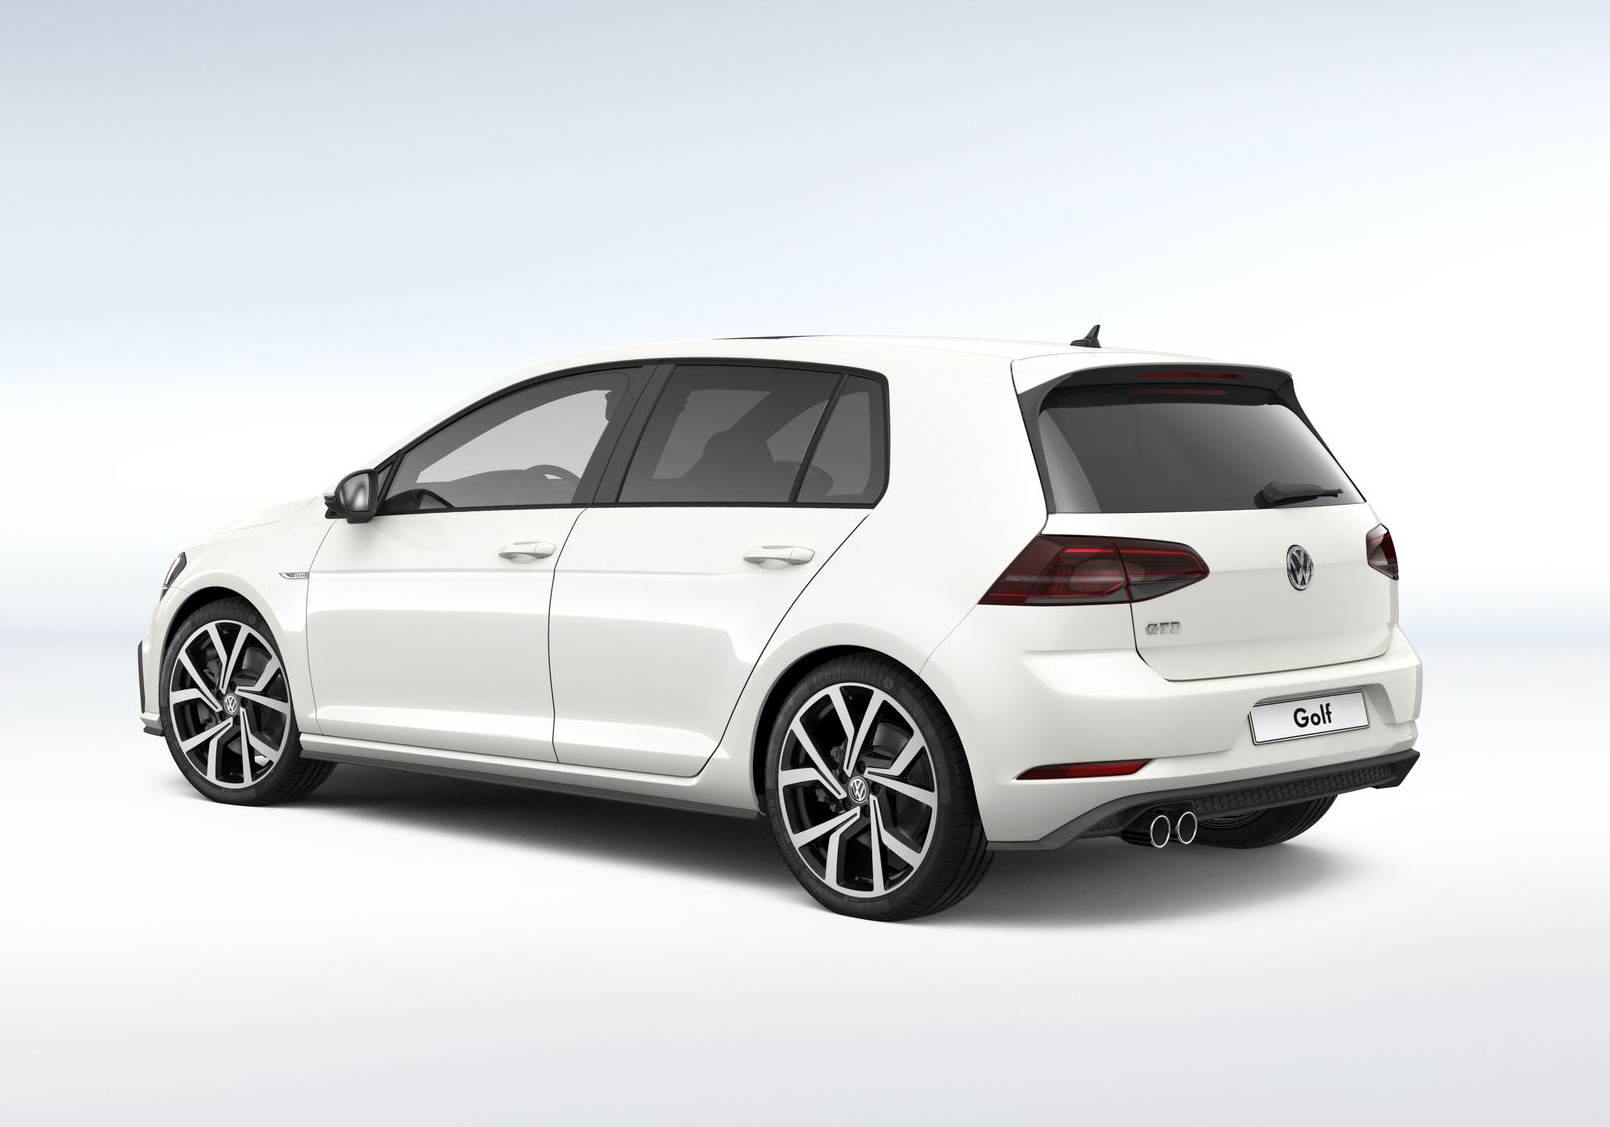 volkswagen golf 7 gtd ecl lease. Black Bedroom Furniture Sets. Home Design Ideas